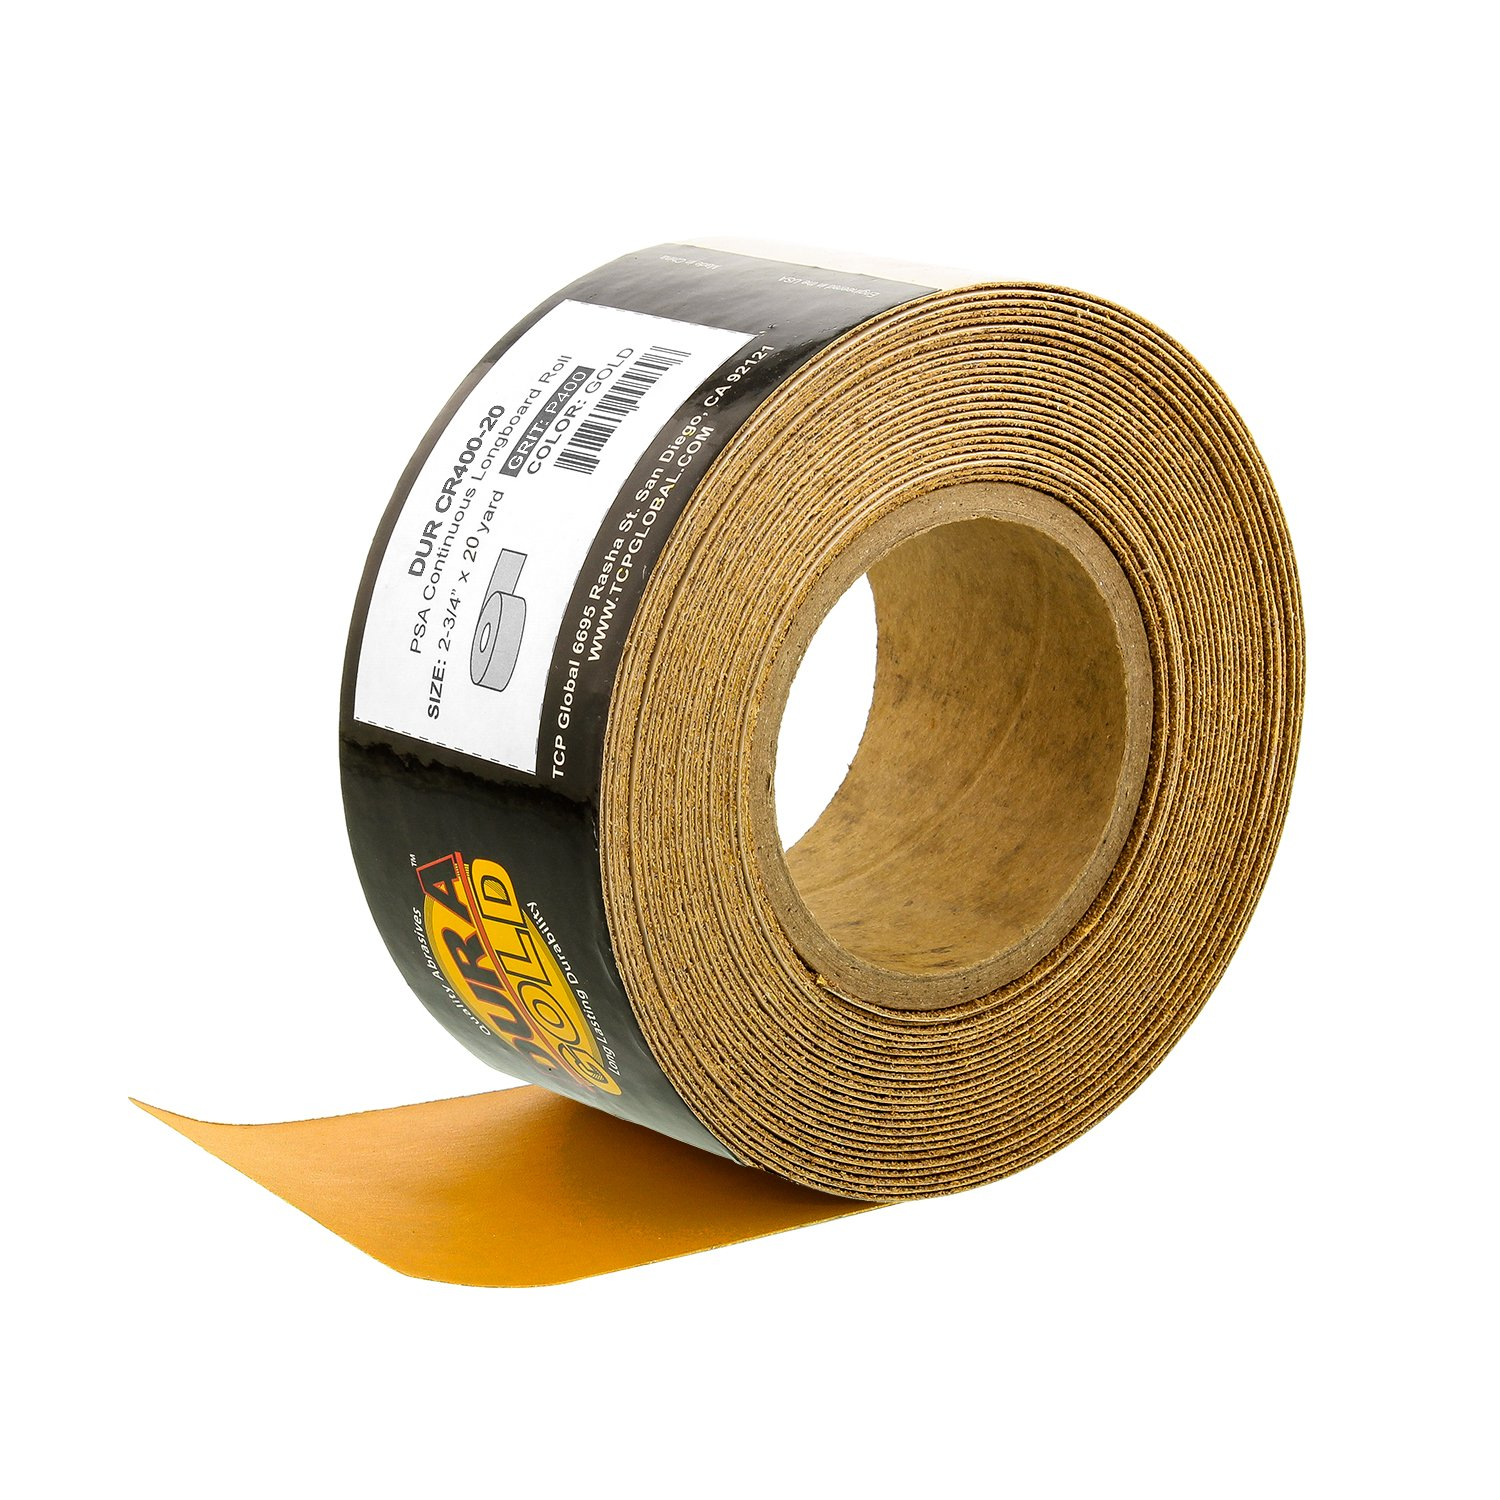 Dura-Gold - Premium - 400 Grit Gold - Longboard Continuous Roll 20 Yards Long by 2-3/4'' Wide PSA Self Adhesive Stickyback Longboard Sandpaper for Automotive and Woodworking